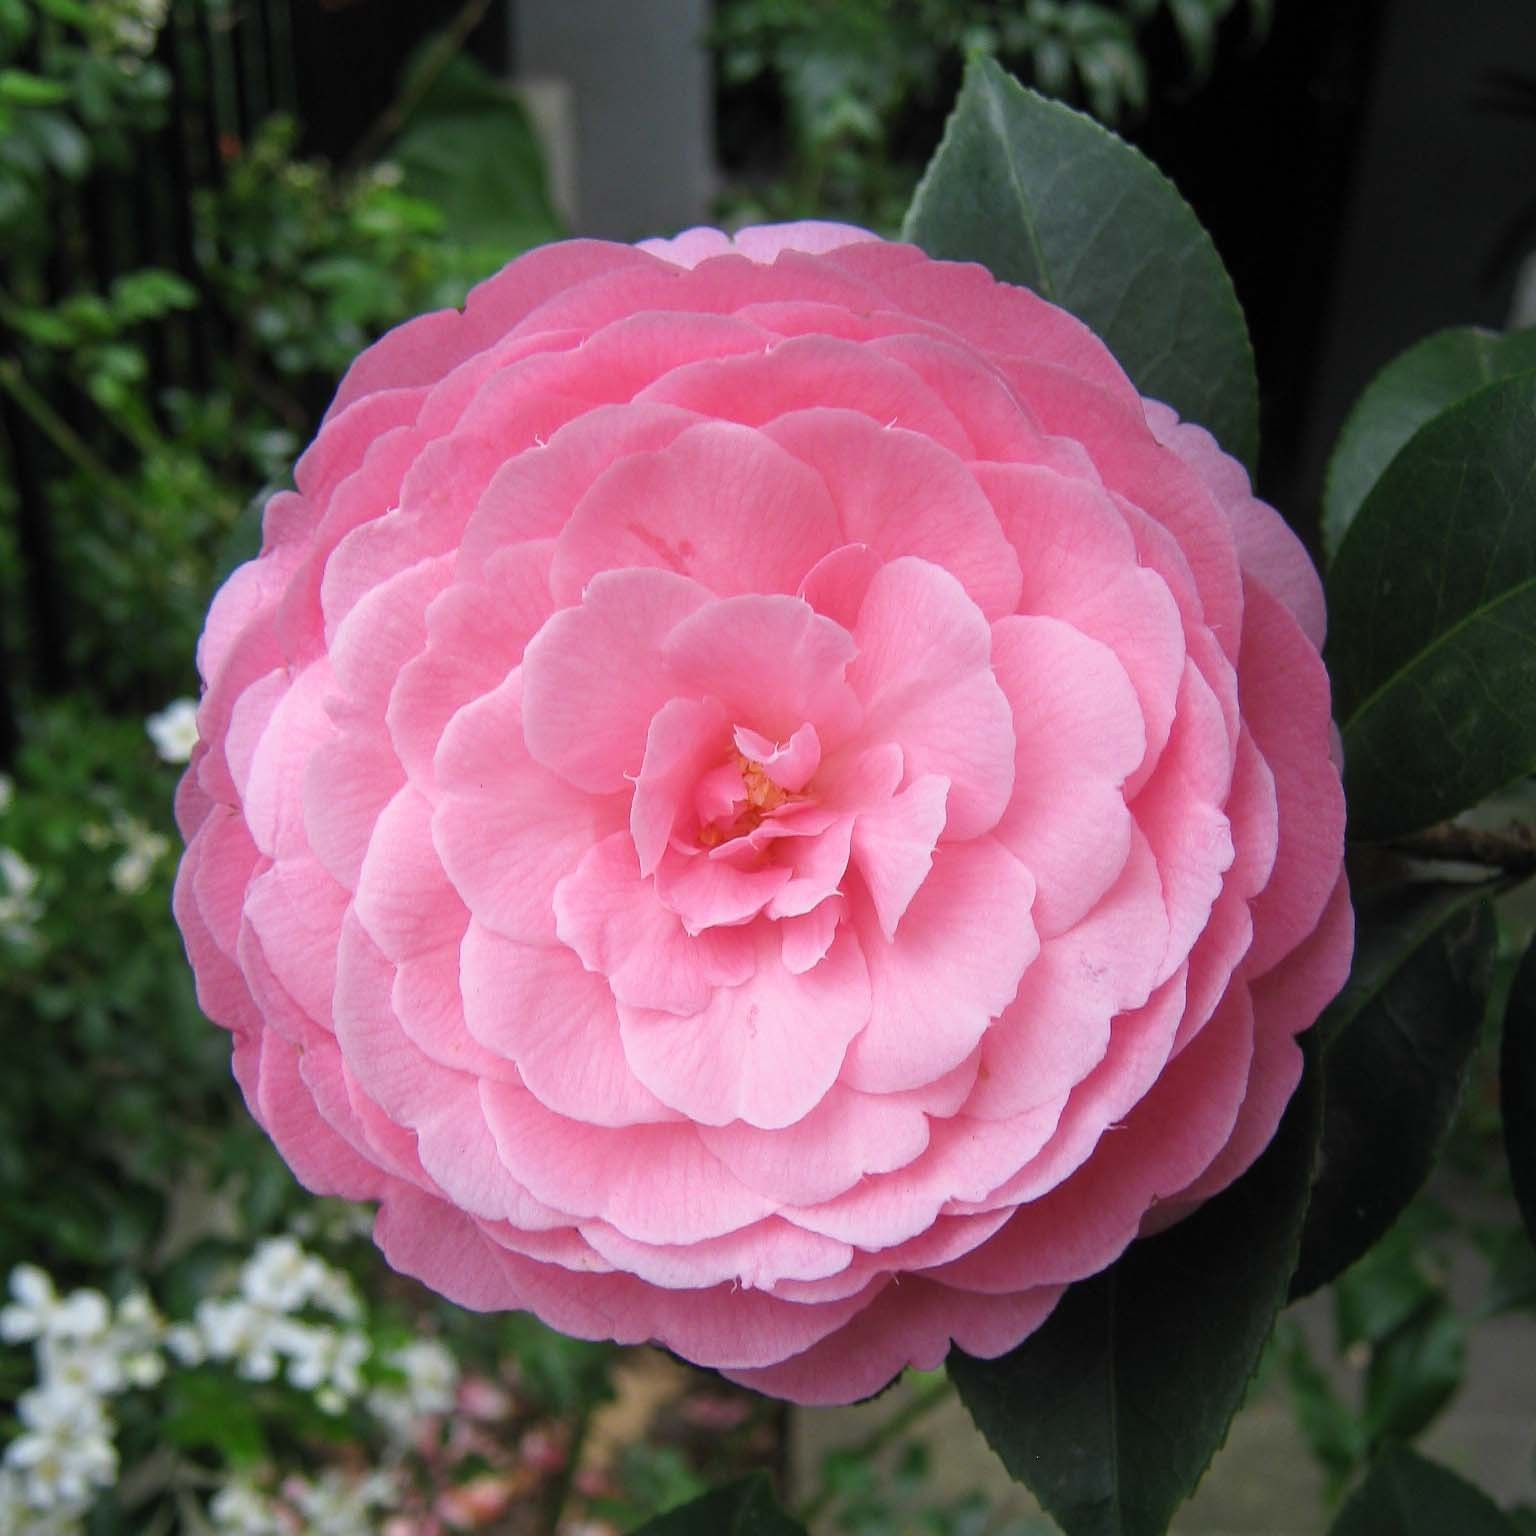 Camélia EG Waterhouse - Camellia (x) williamsii